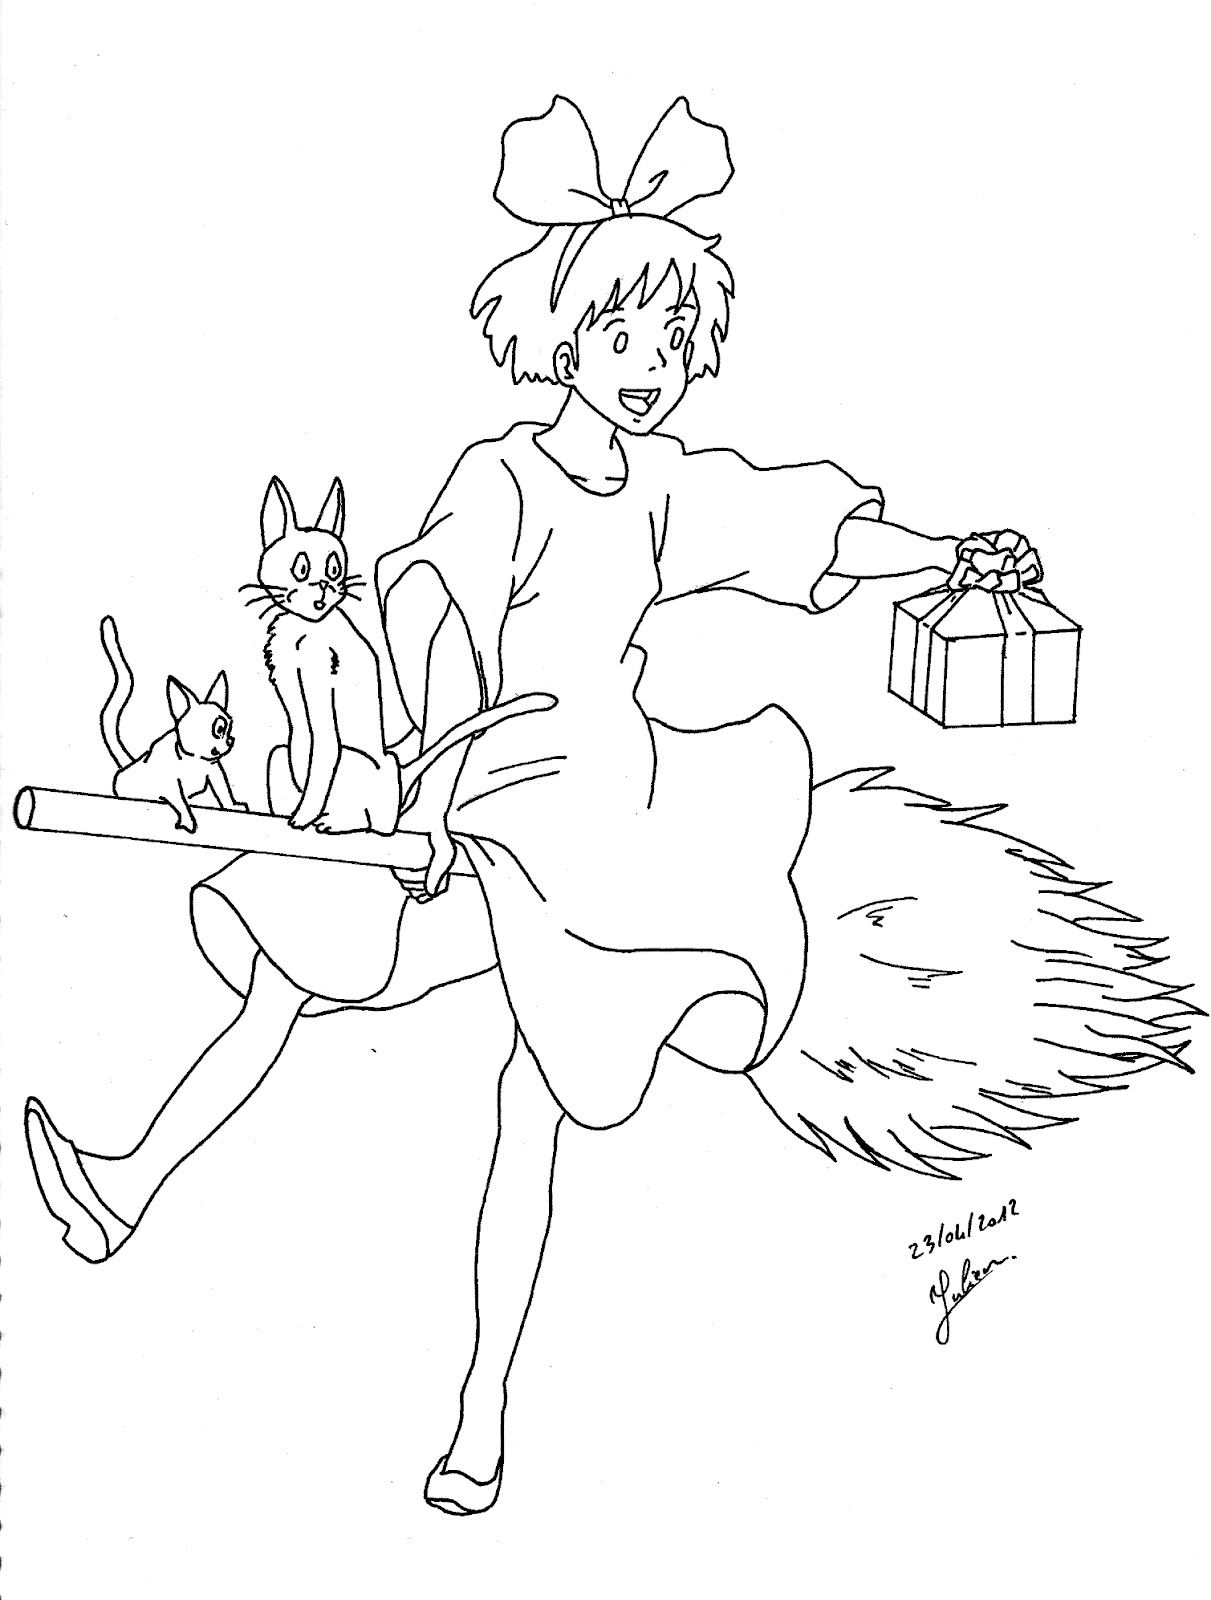 It is an image of Impertinent Kiki's Delivery Service Coloring Pages